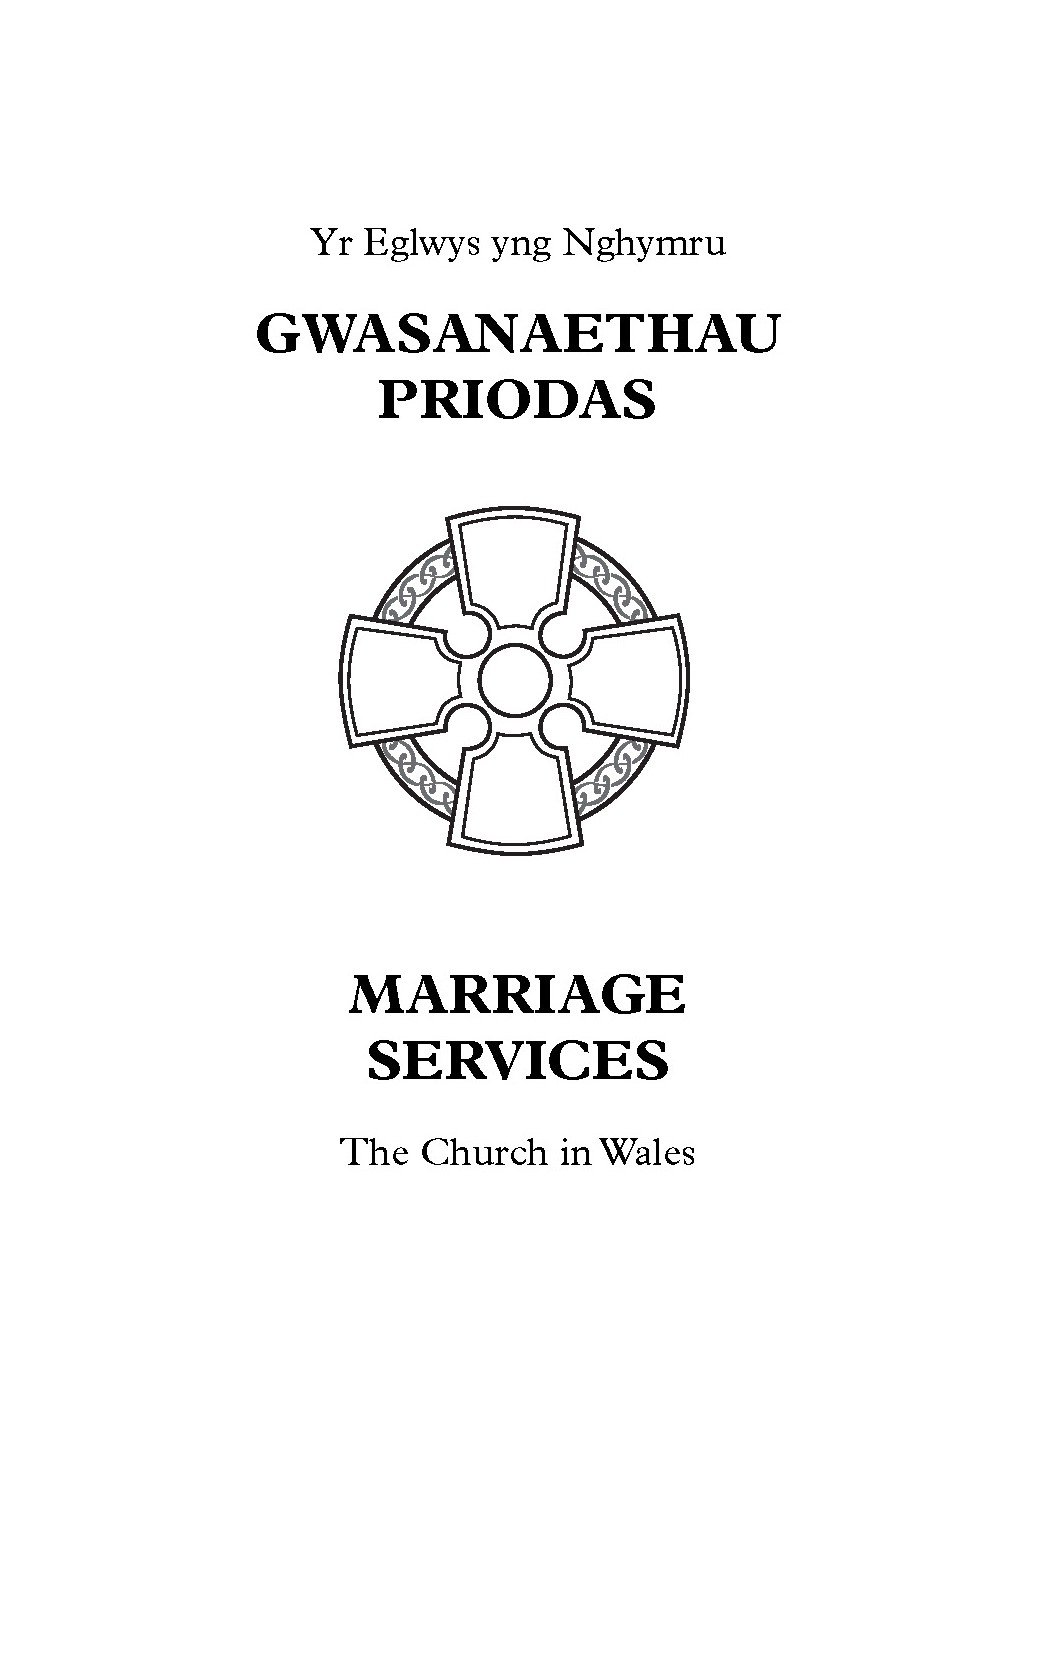 Marriage Services 2010